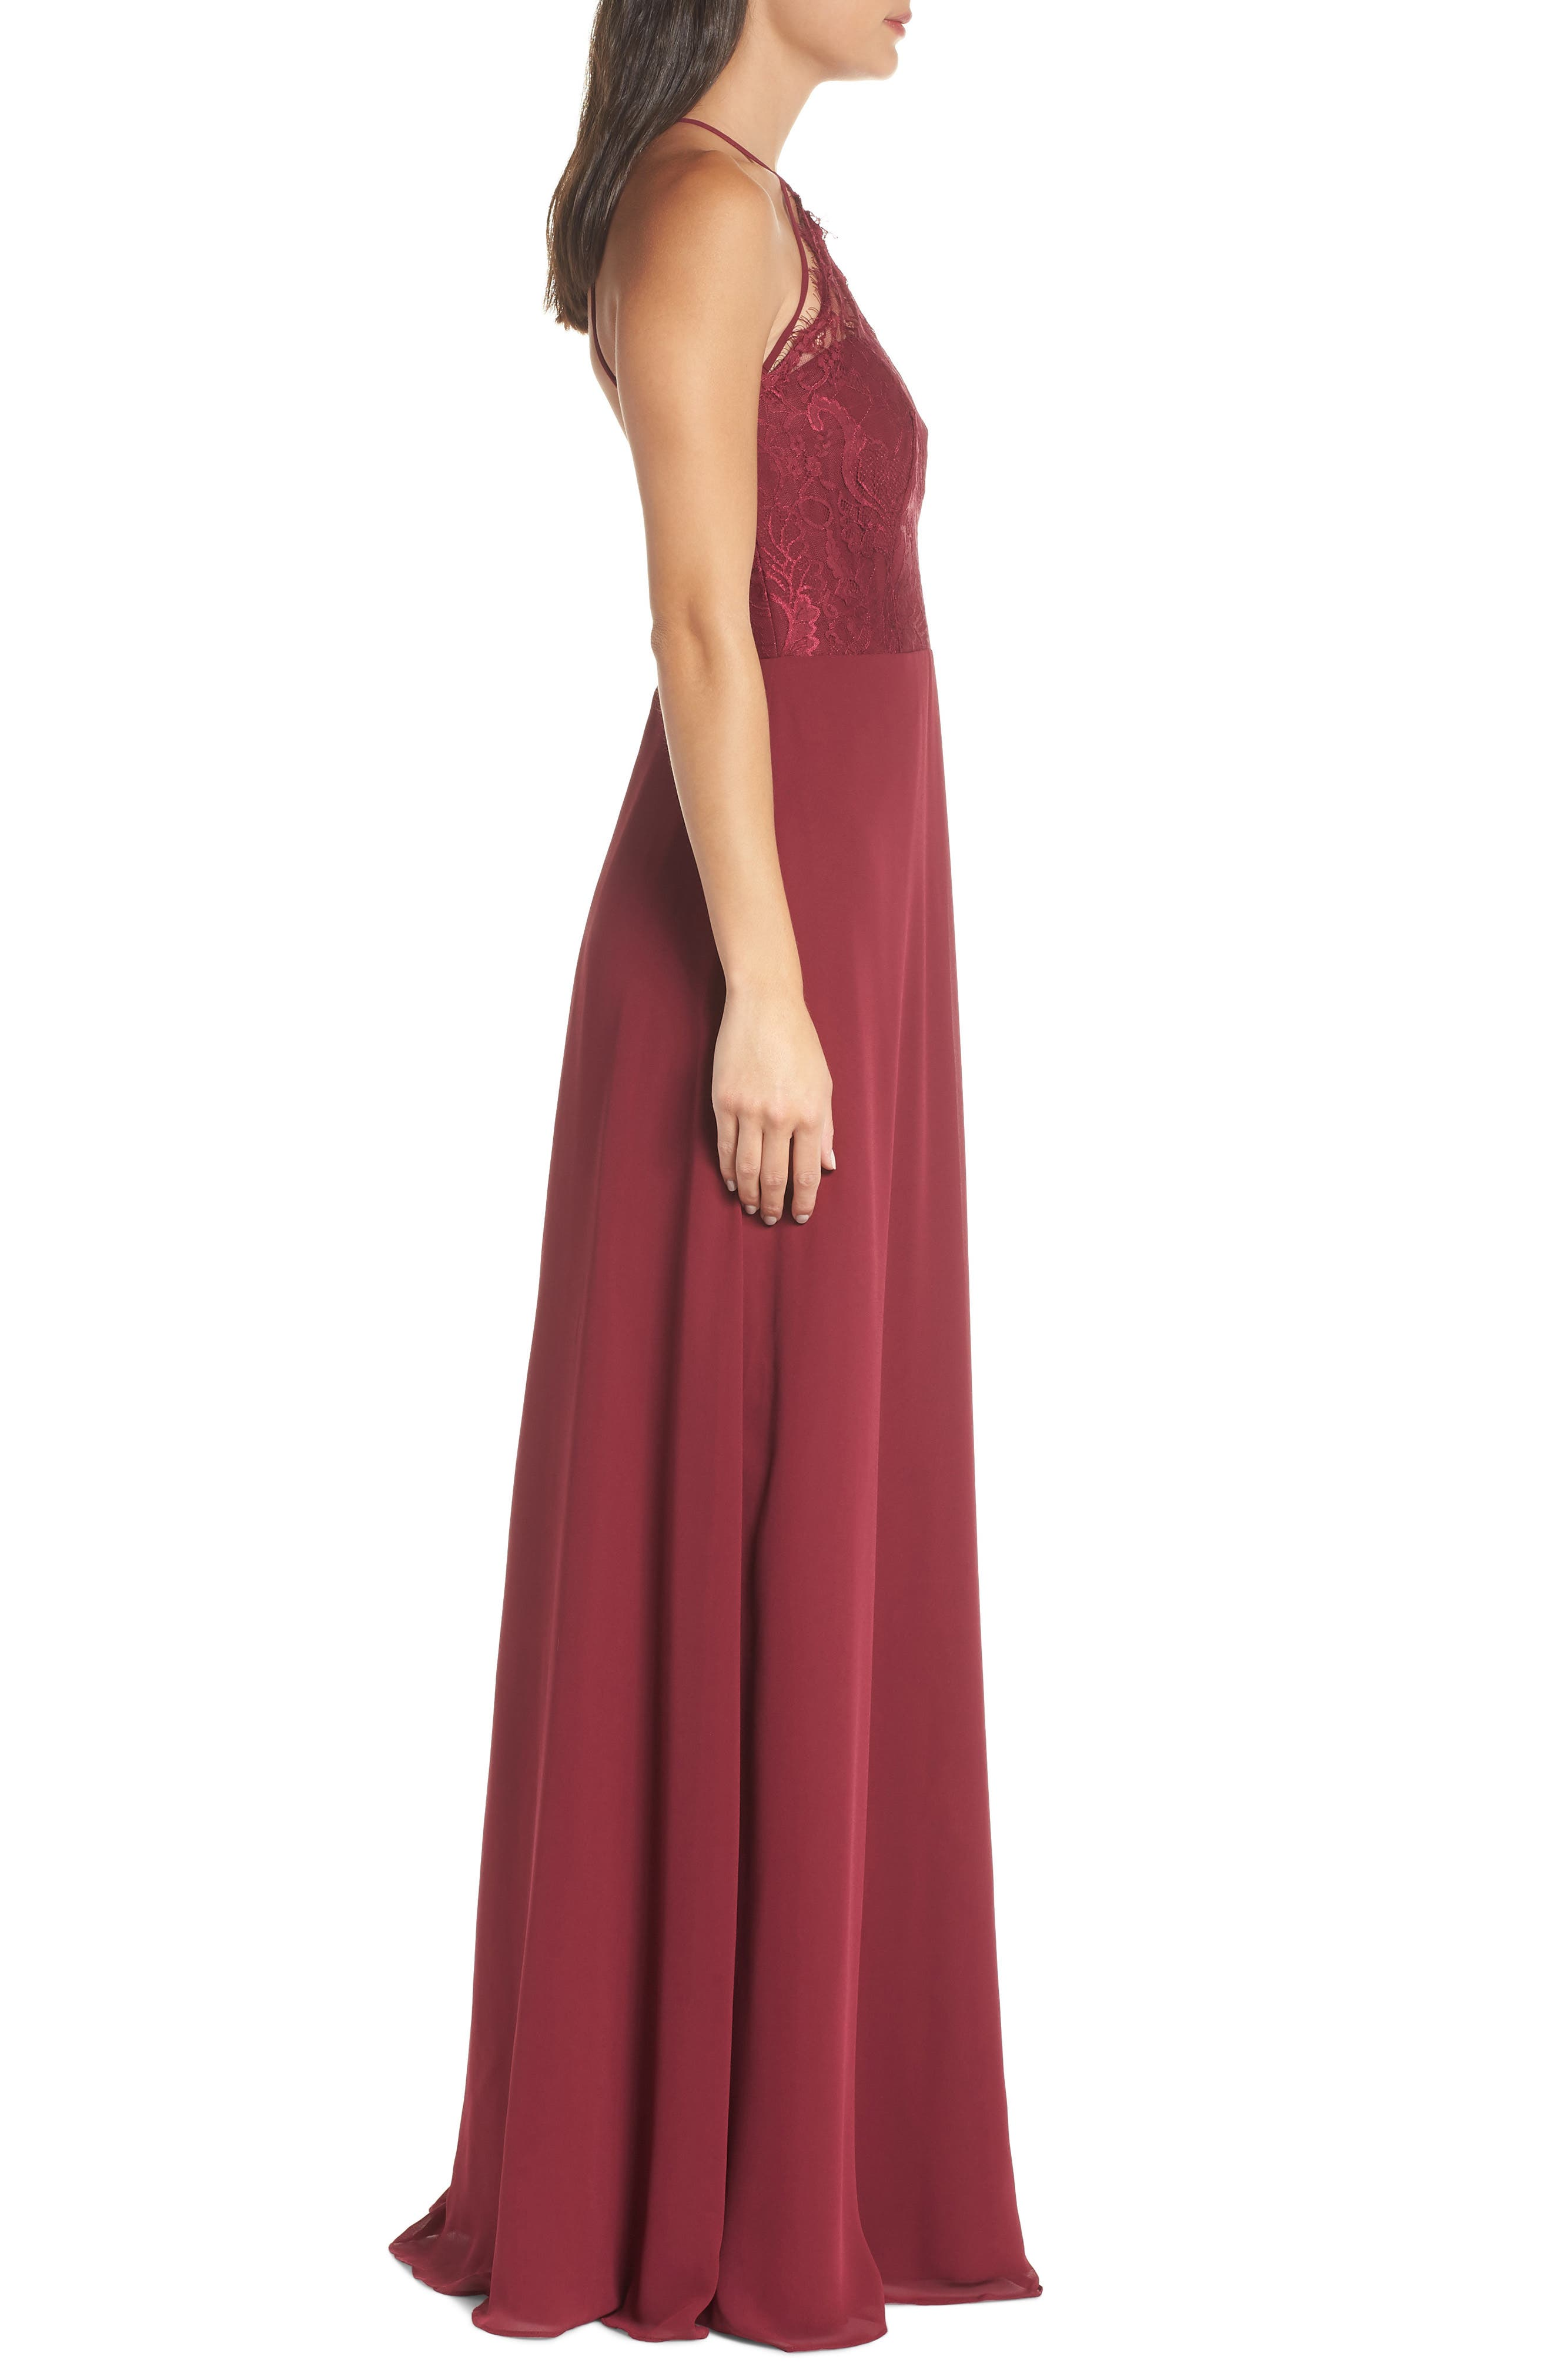 HAYLEY PAIGE OCCASIONS, Lace & Chiffon Halter Gown, Alternate thumbnail 4, color, BURGUNDY